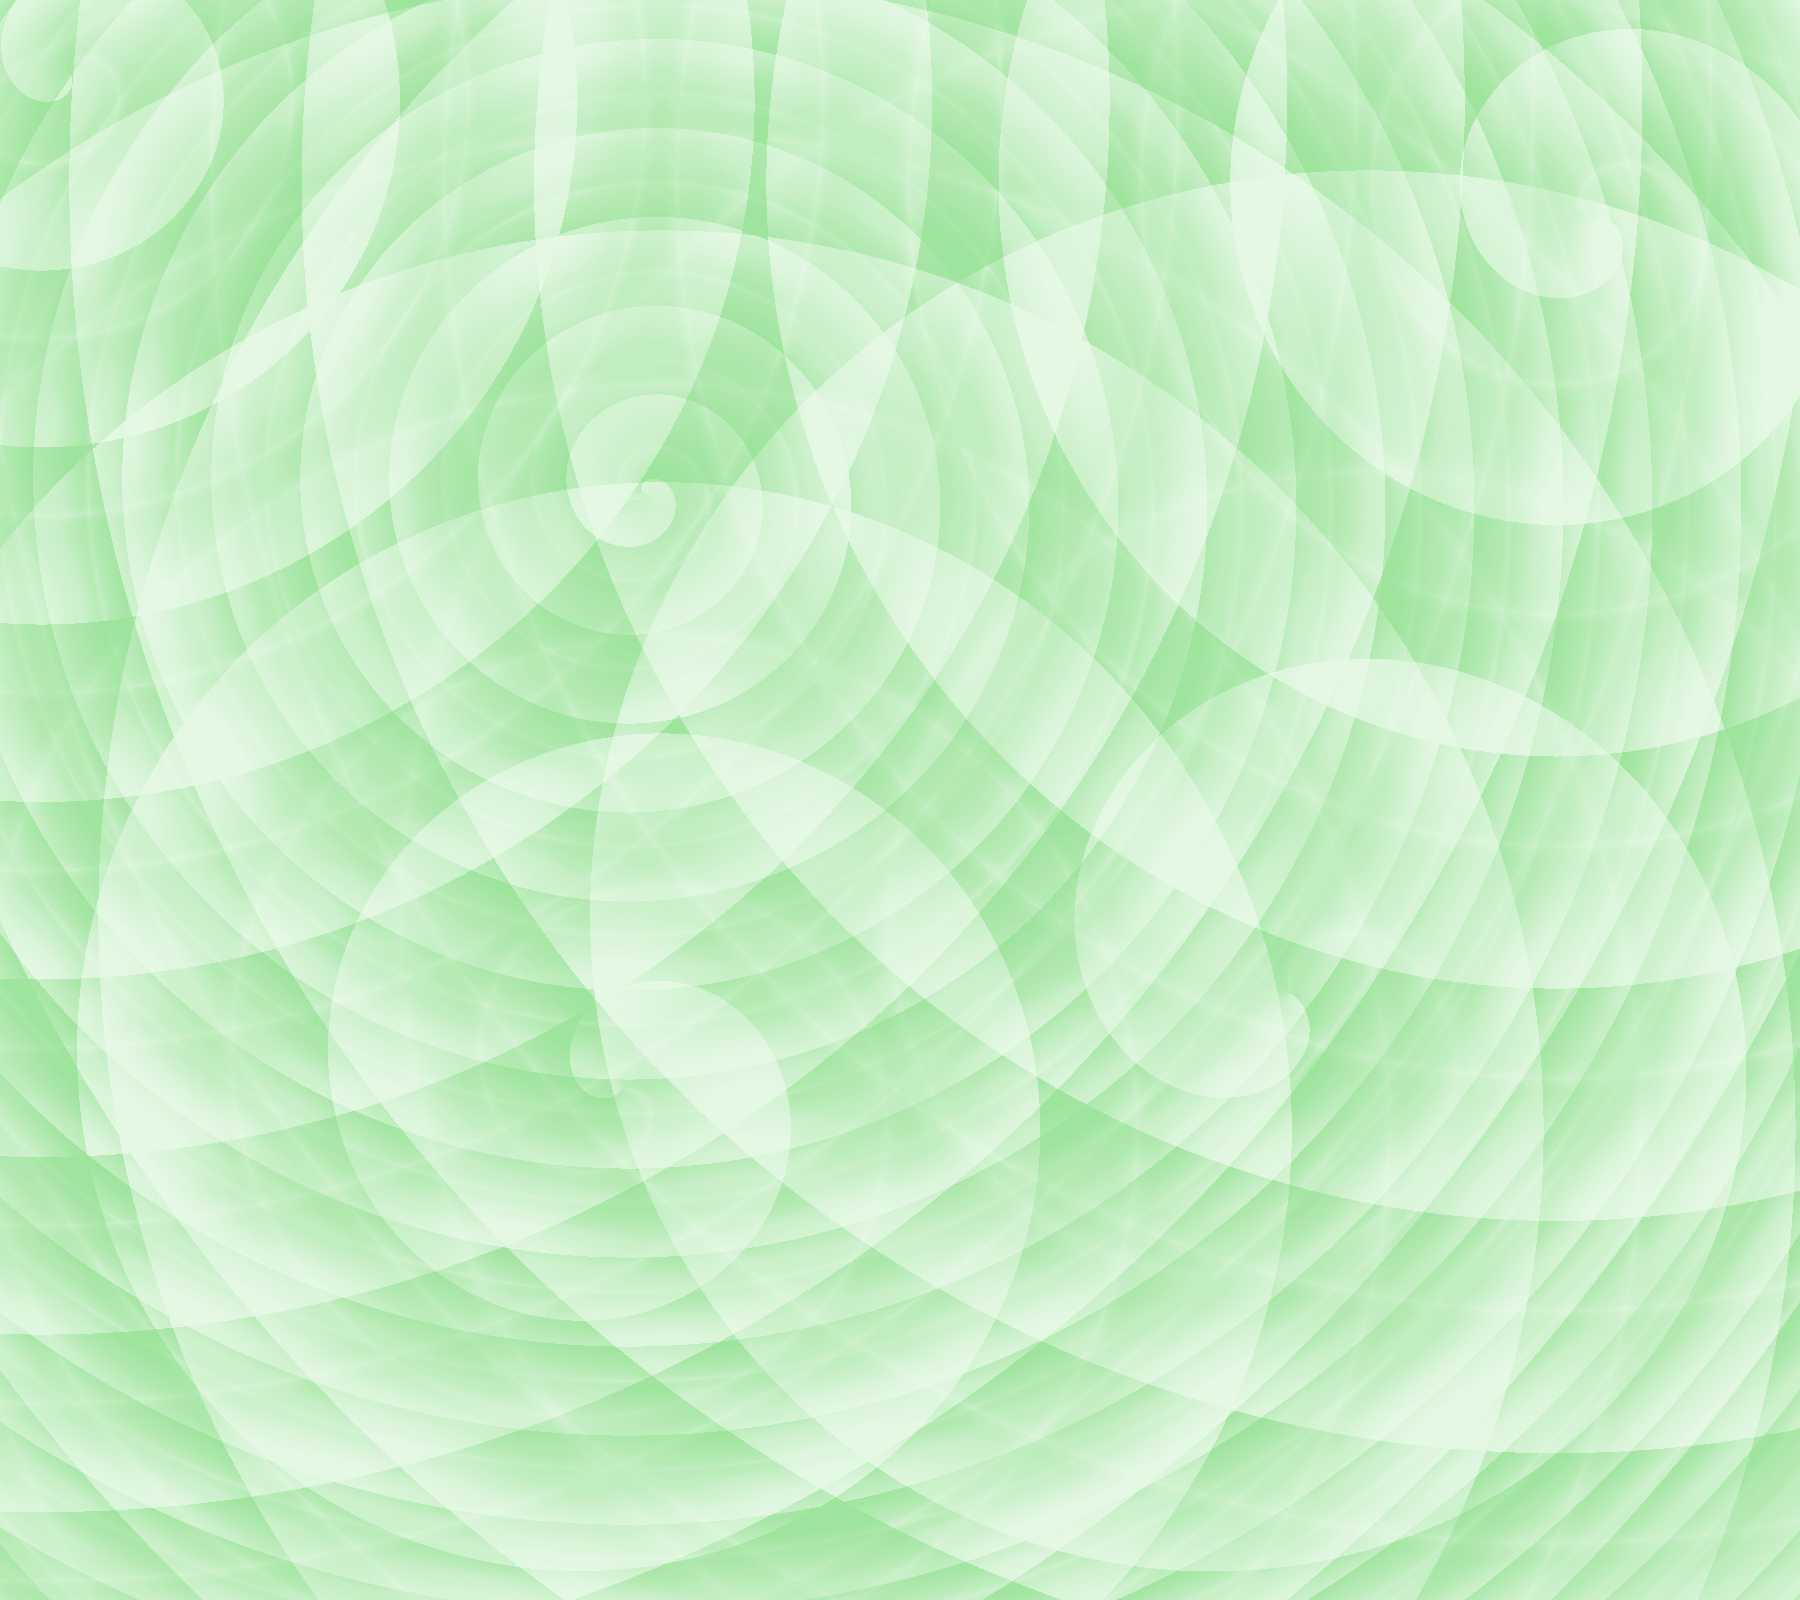 Light Green Background Designs Images Pictures   Becuo 1800x1600